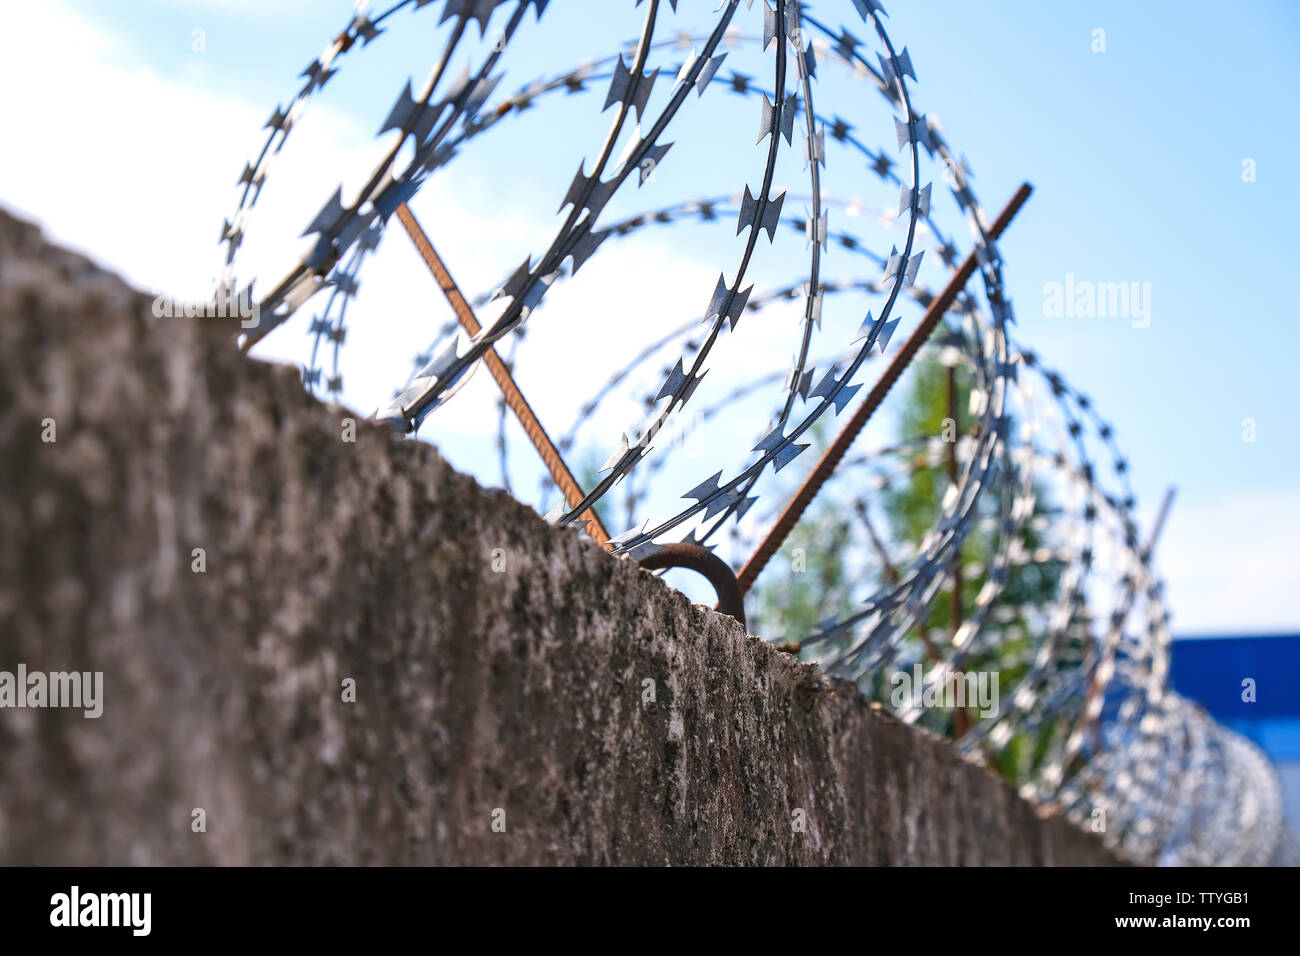 barbed wire steel wall against the immigations in europe - Stock Image